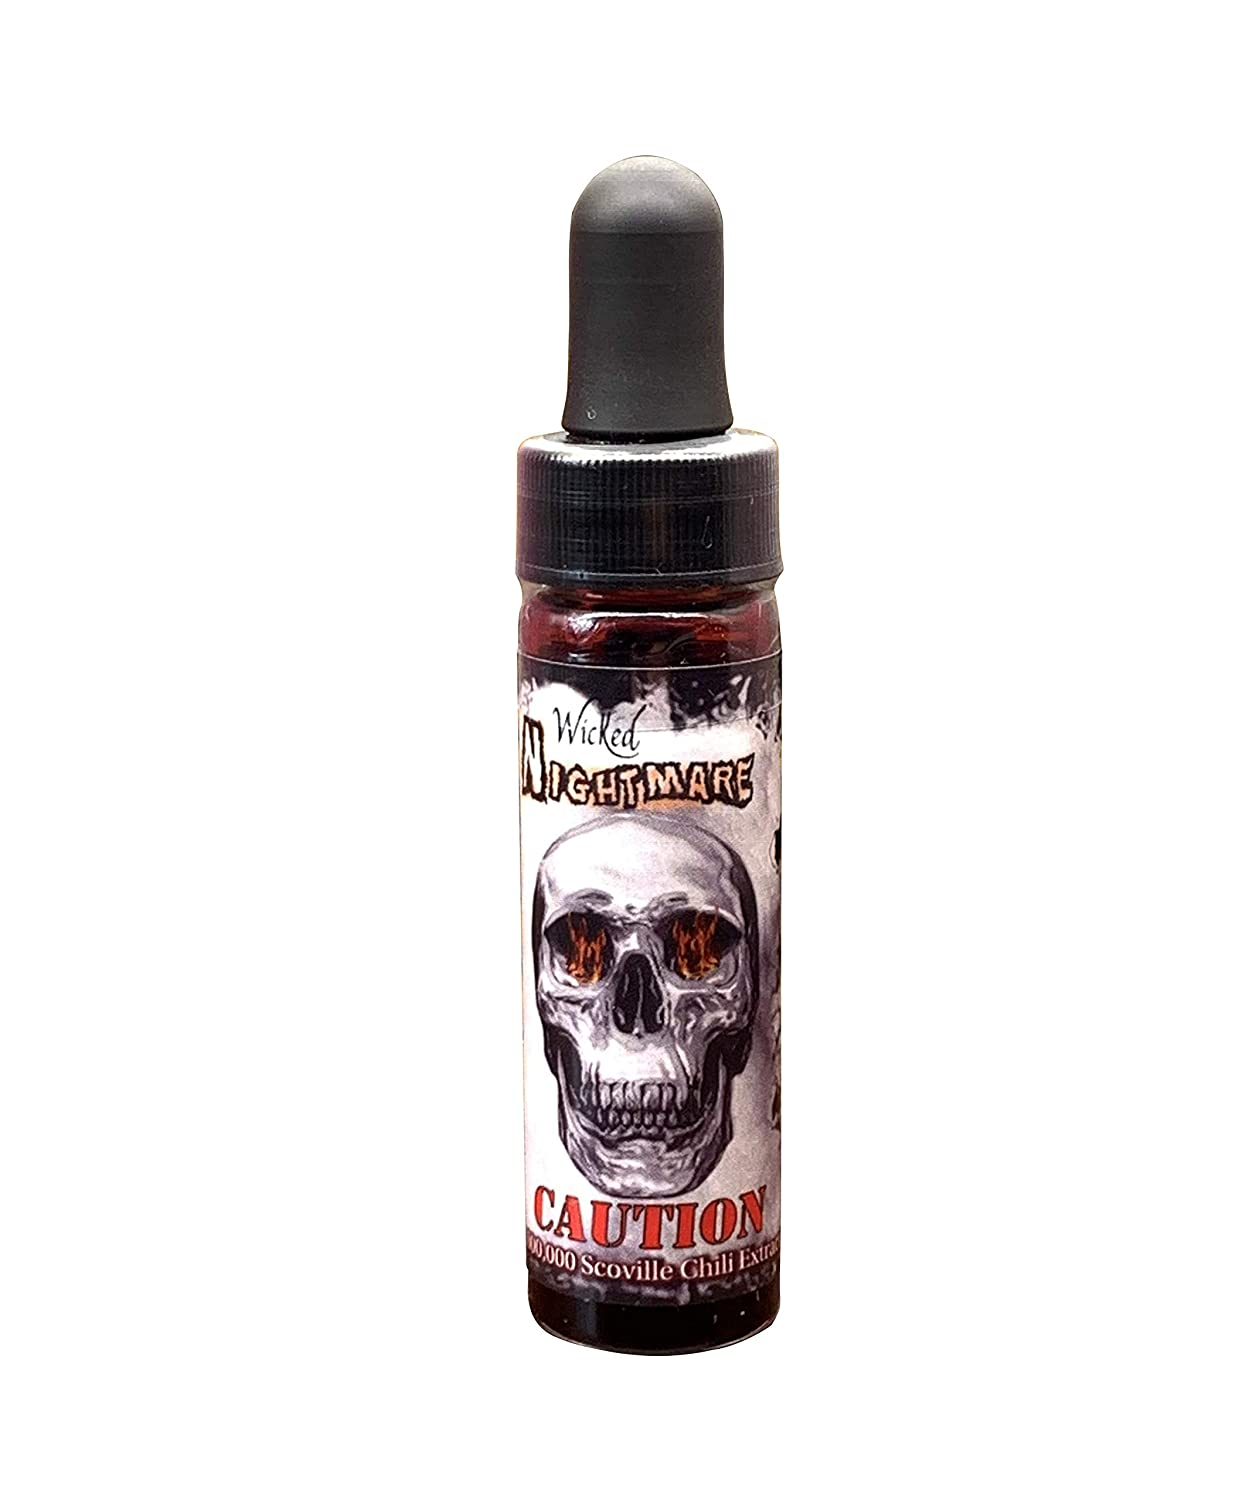 Wicked Nightmare Extract Hot Sauce Hotter Than Reaper Ghost Pepper Scorpion